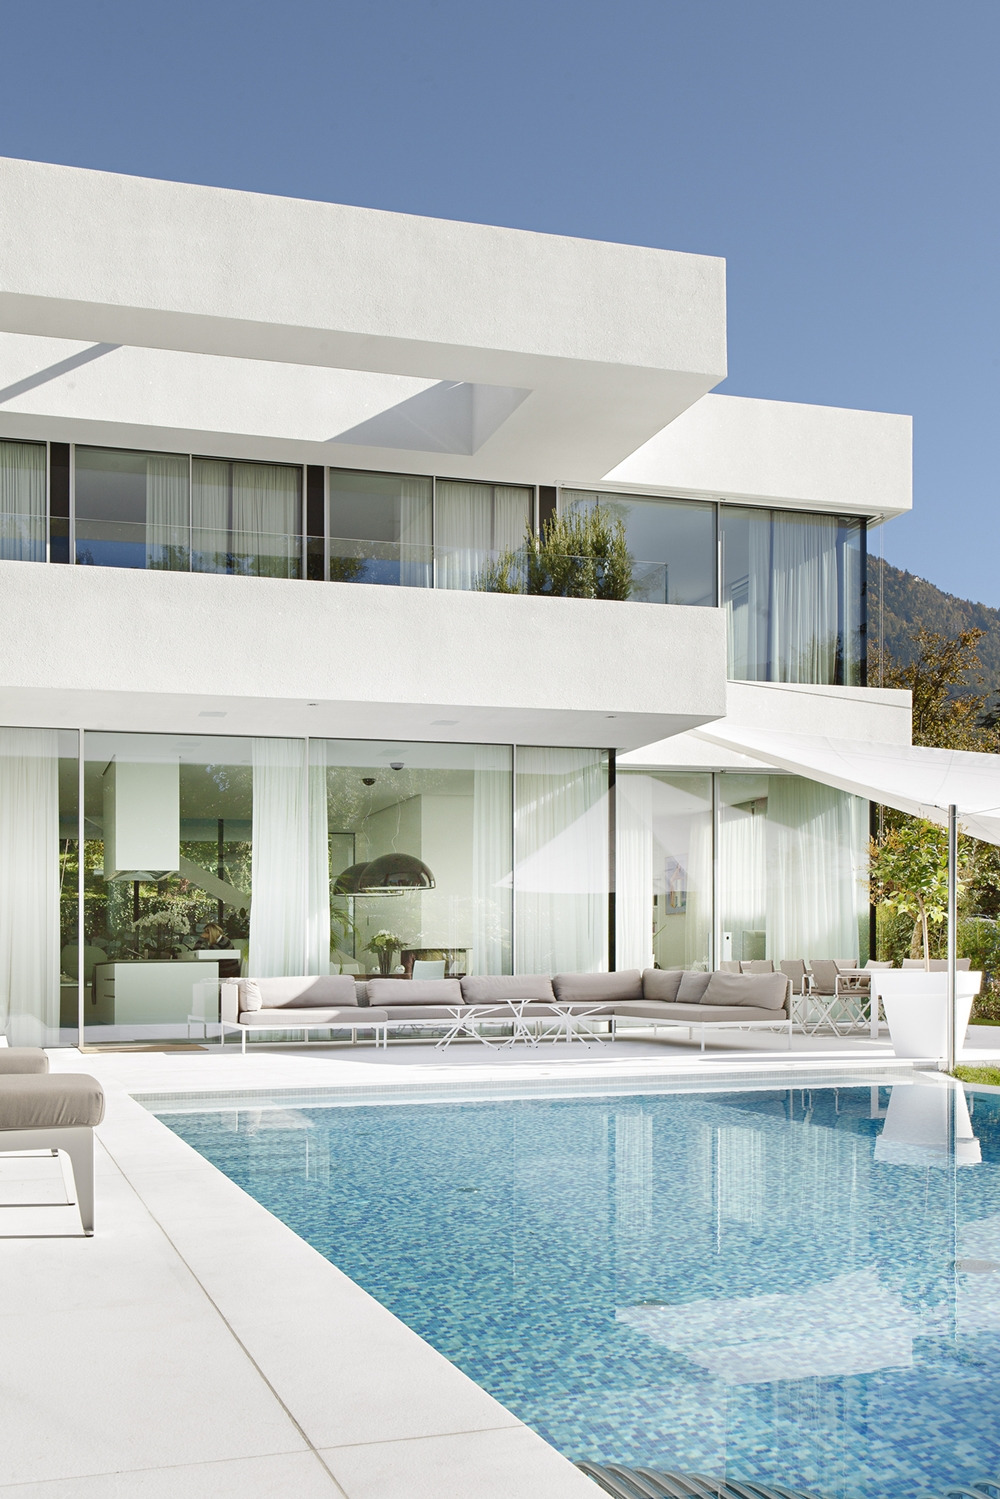 World Famous House Design Best Of Most Beautiful Houses In the World House M